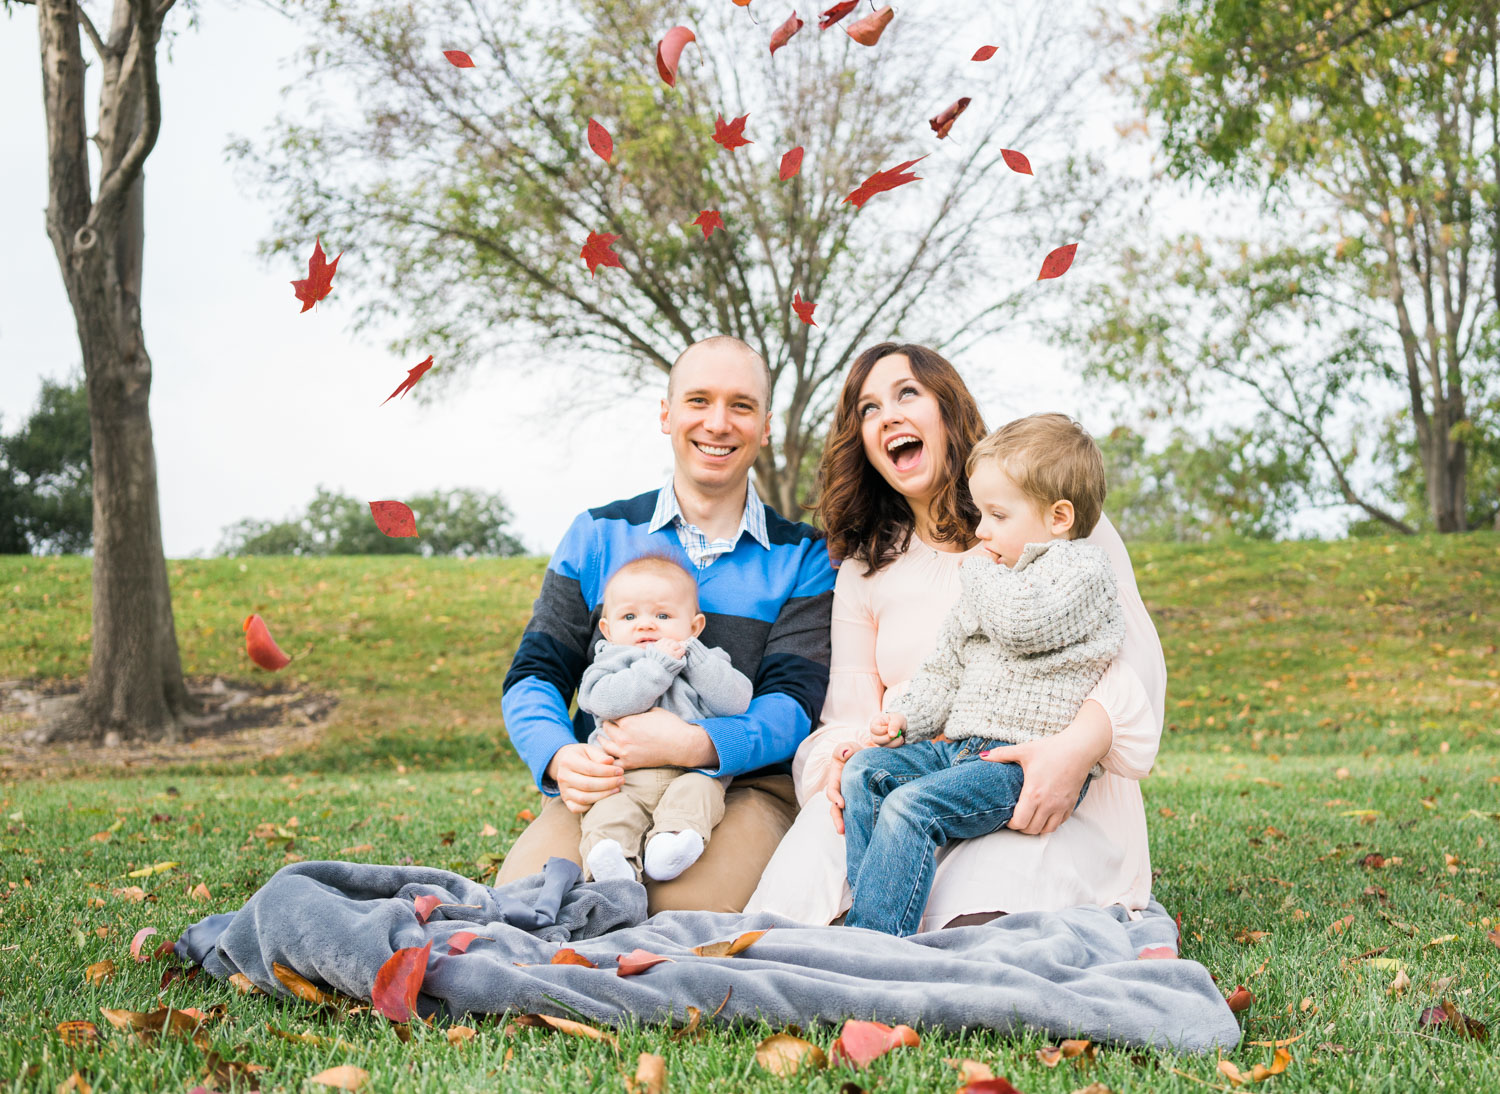 Fall Family Photoshoot - This picture is not perfect but the expressions are priceless and a keepsake for your christmas tree.